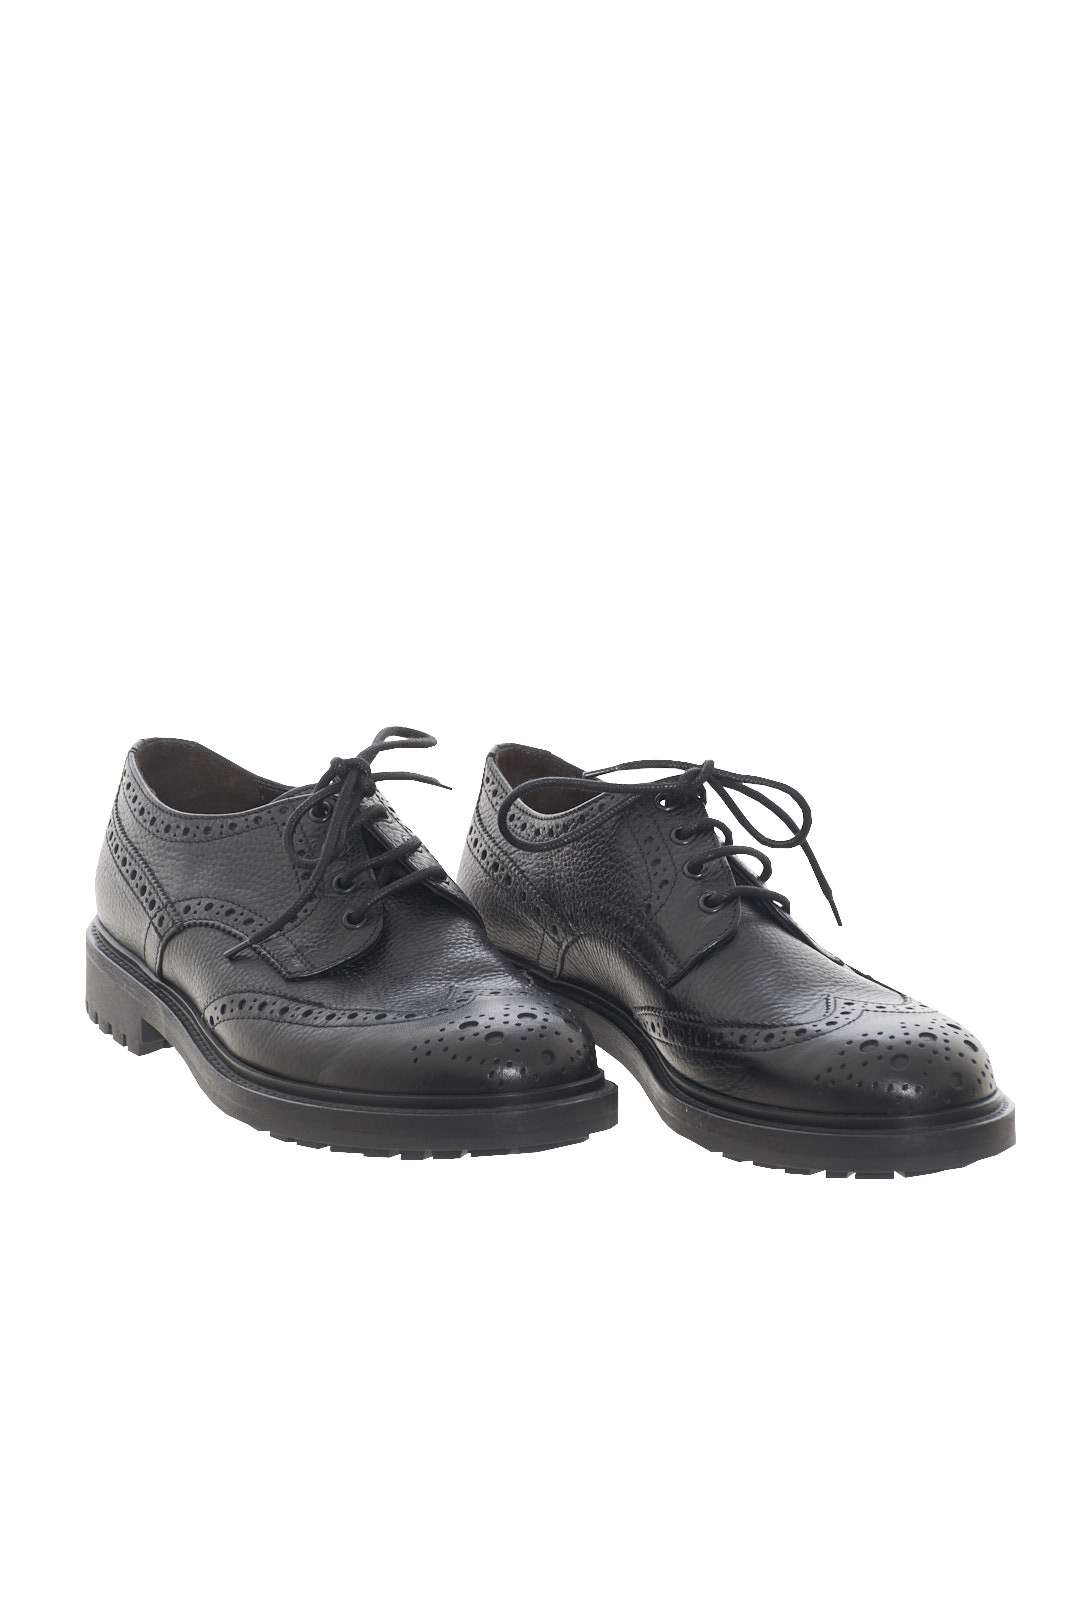 https://www.parmax.com/media/catalog/product/a/i/AI-outlet_parmax-scarpe-uomo-MFW-Collection-112483MW-D.jpg